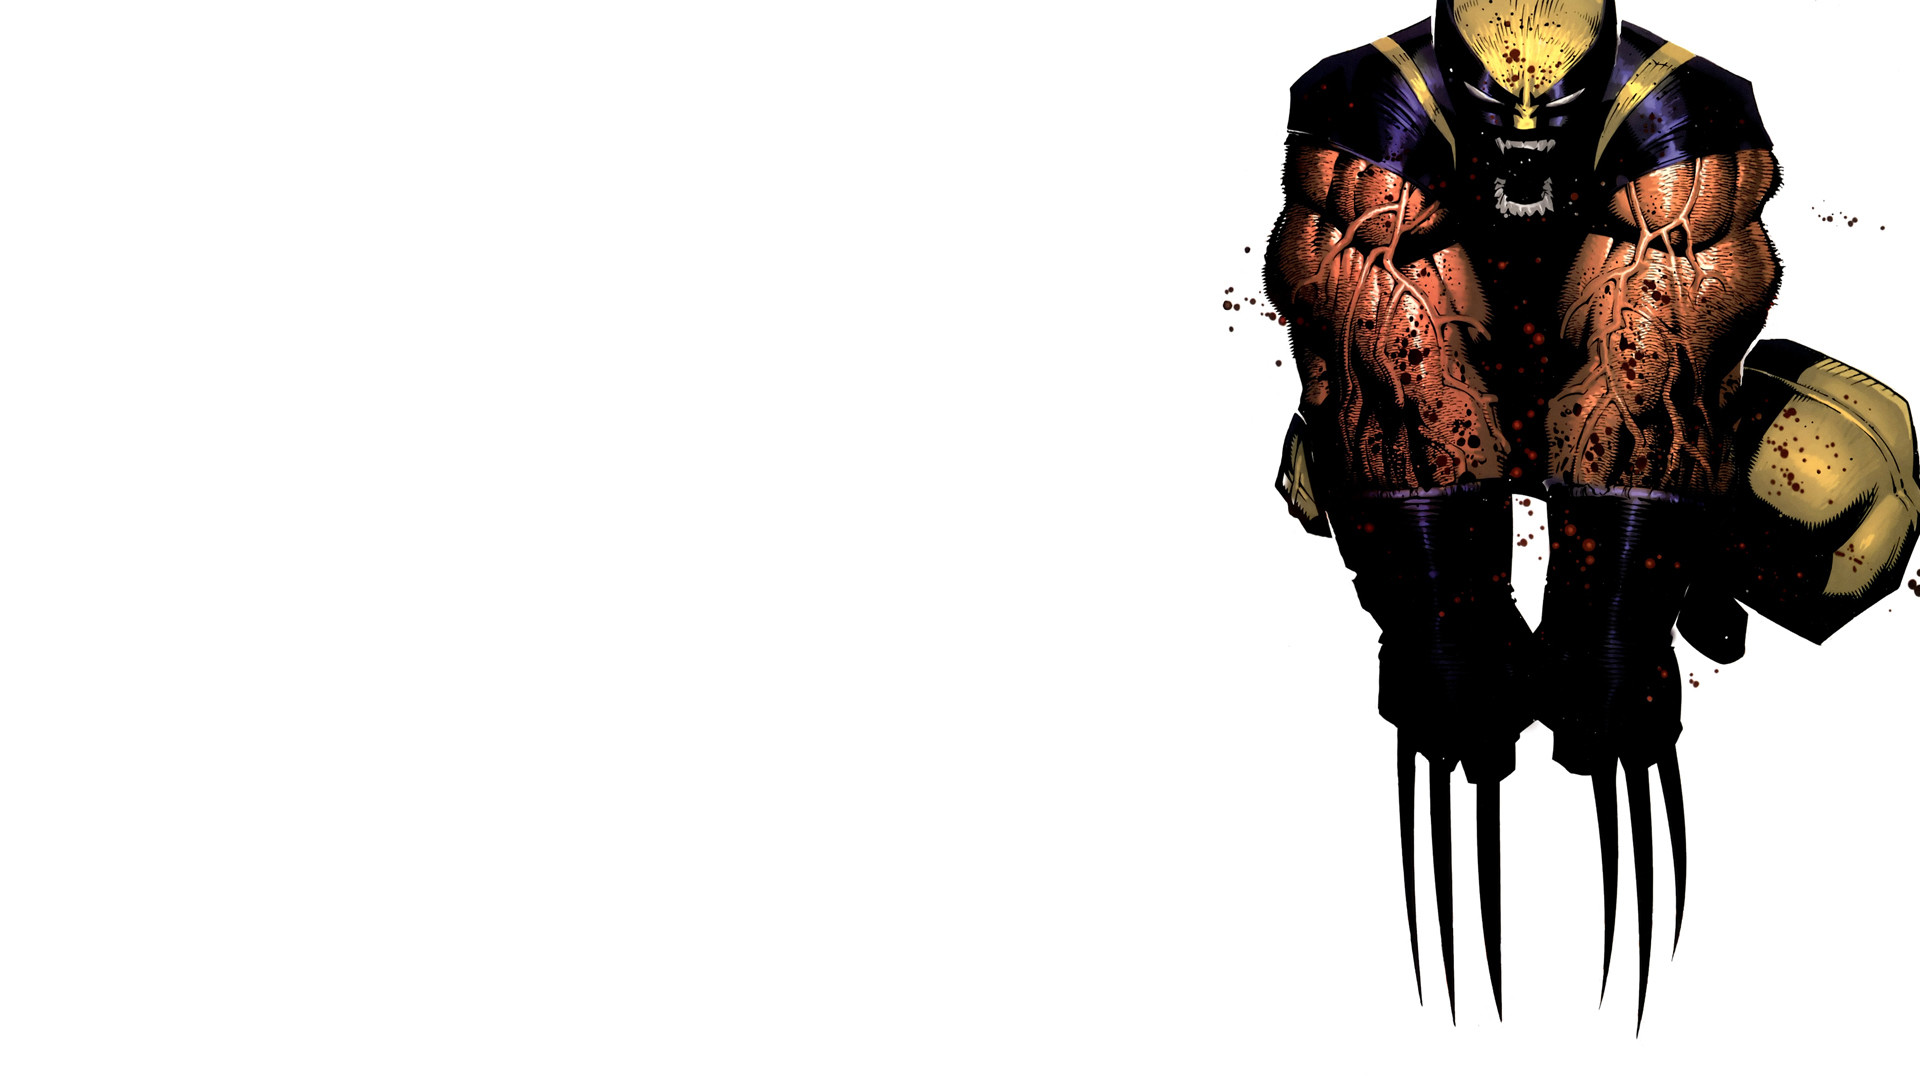 1920x1080 Marvel Wolverine Wallpaper - WallpaperSafari